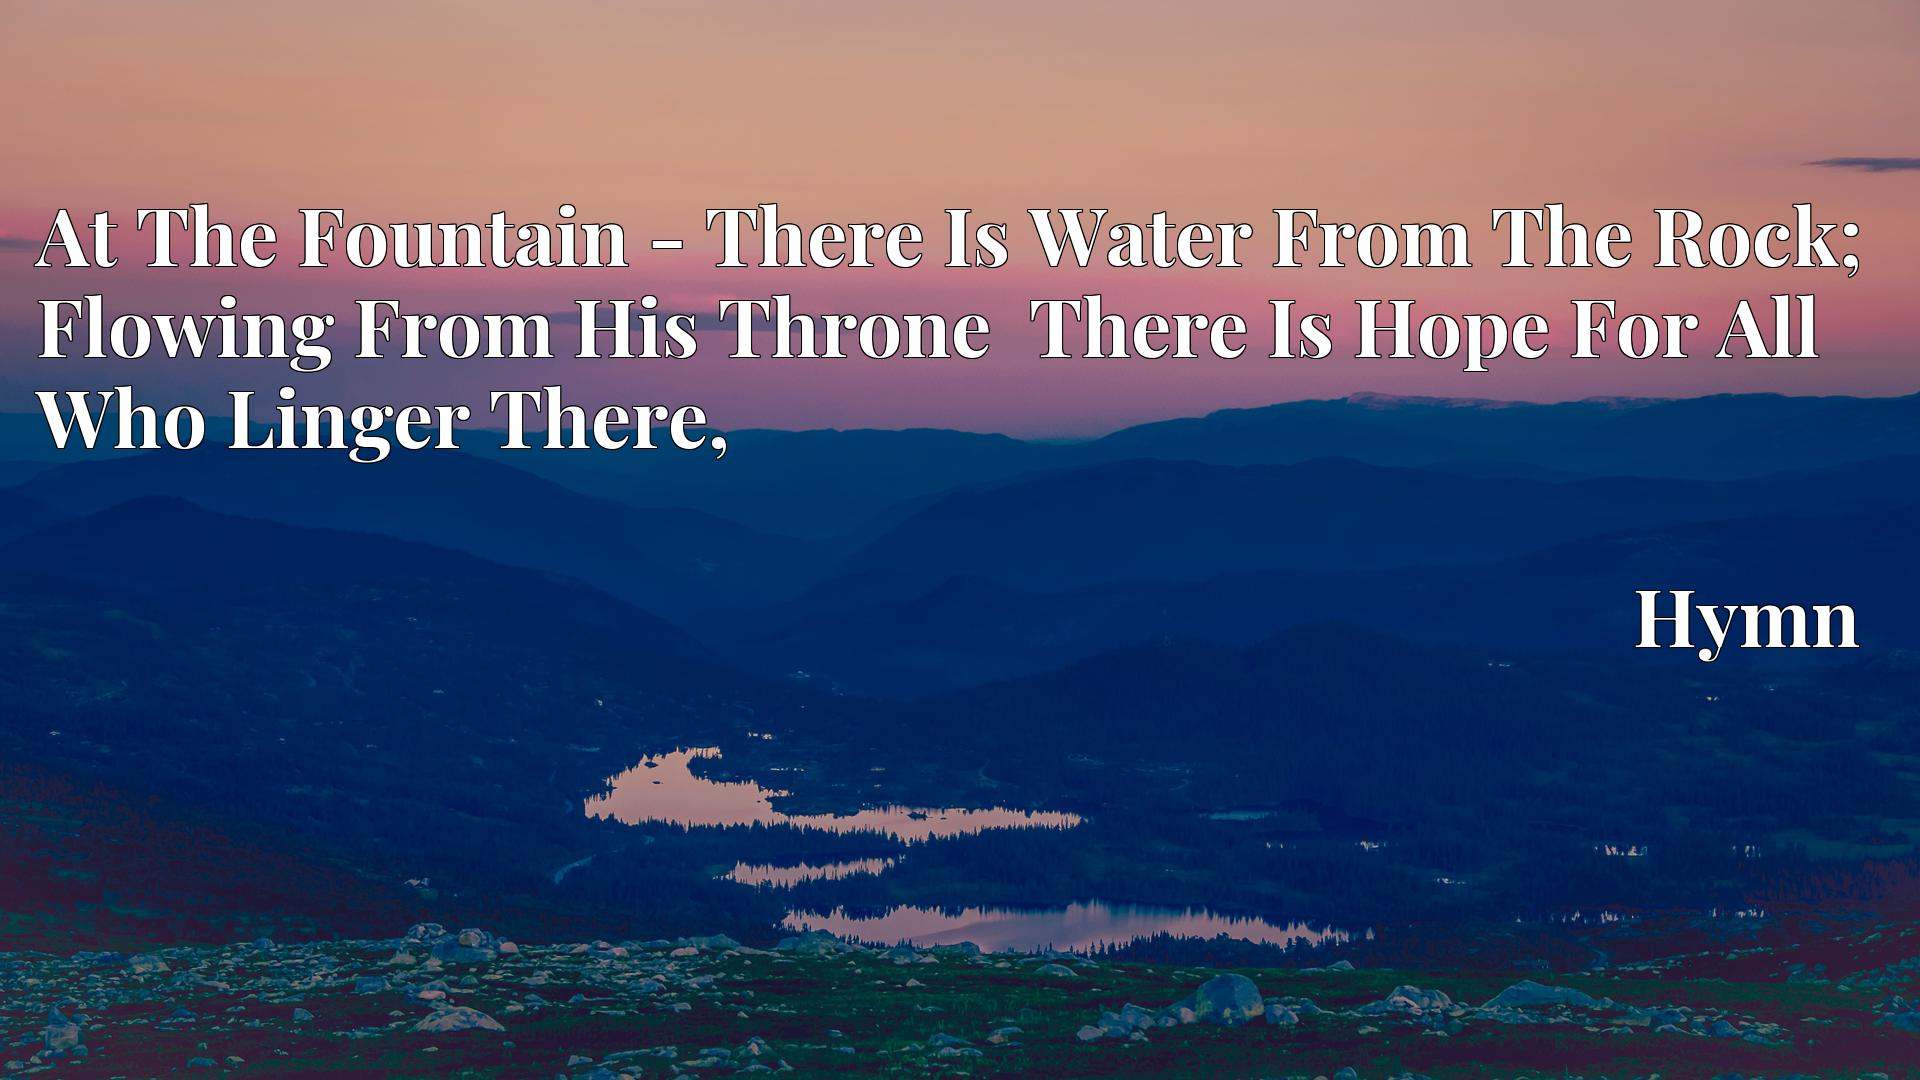 At The Fountain - There Is Water From The Rock; Flowing From His Throne  There Is Hope For All Who Linger There, - Hymn